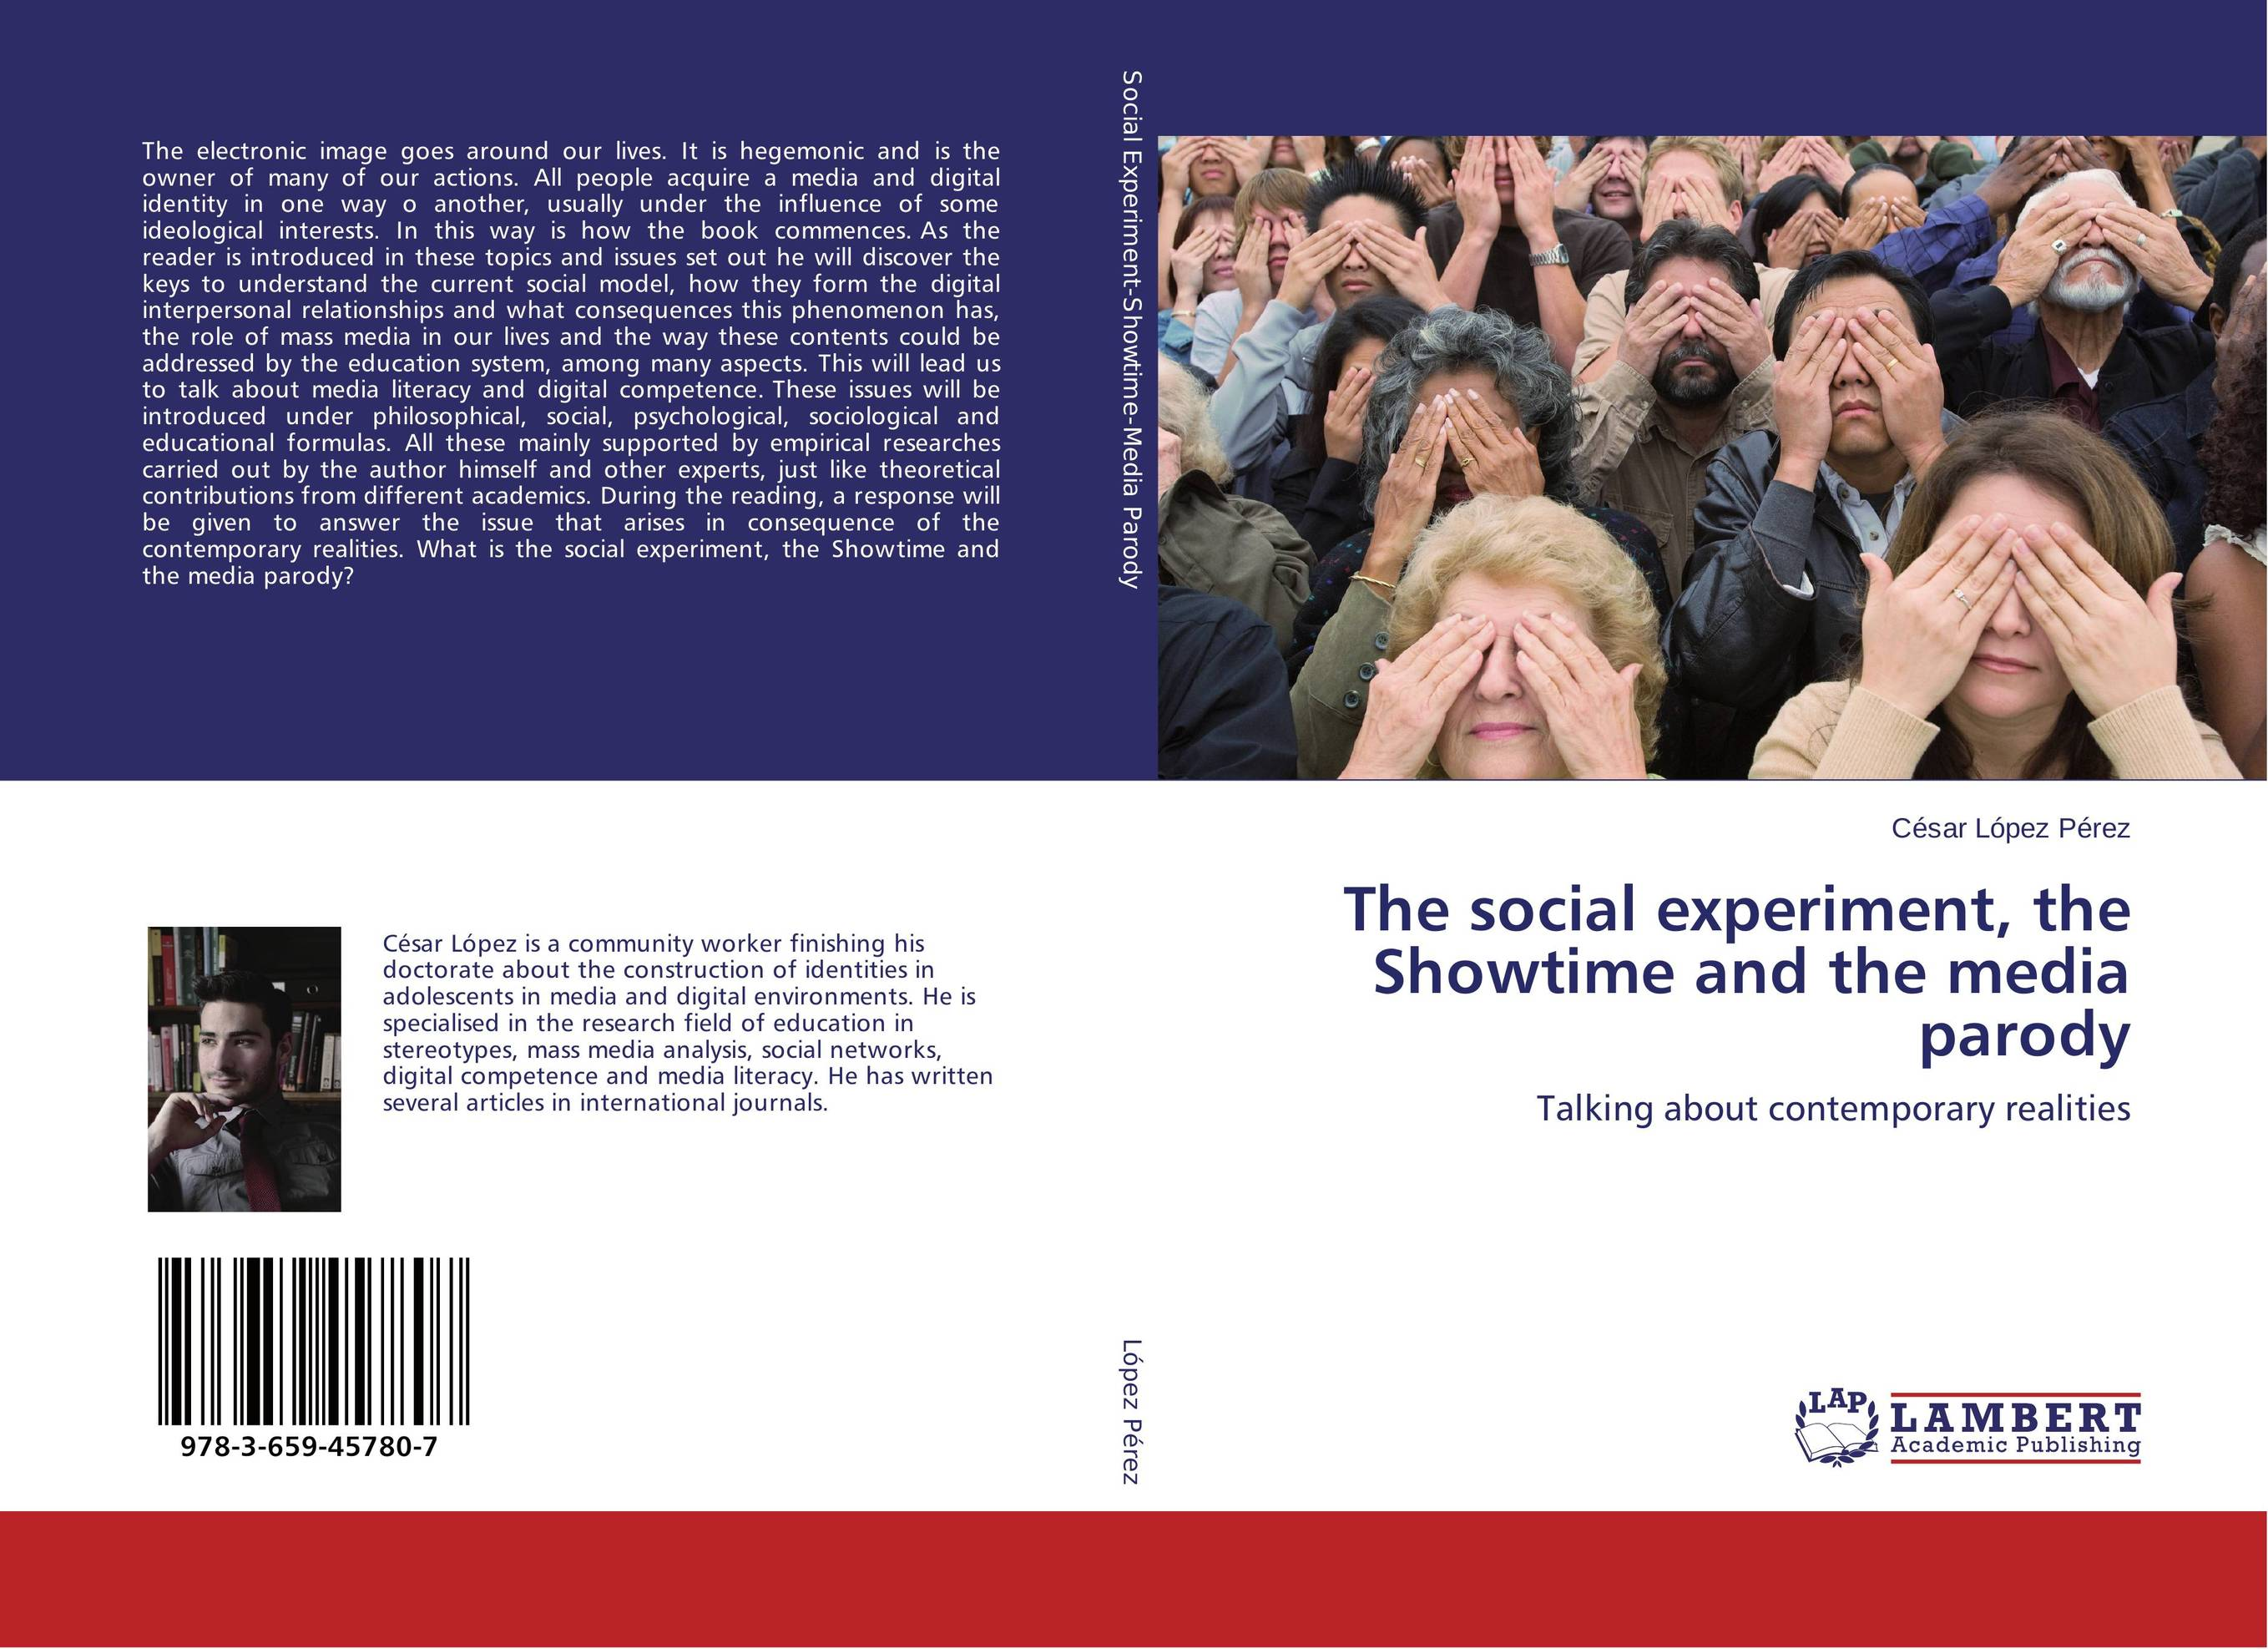 The social experiment, the Showtime and the media parody the social experiment the showtime and the media parody